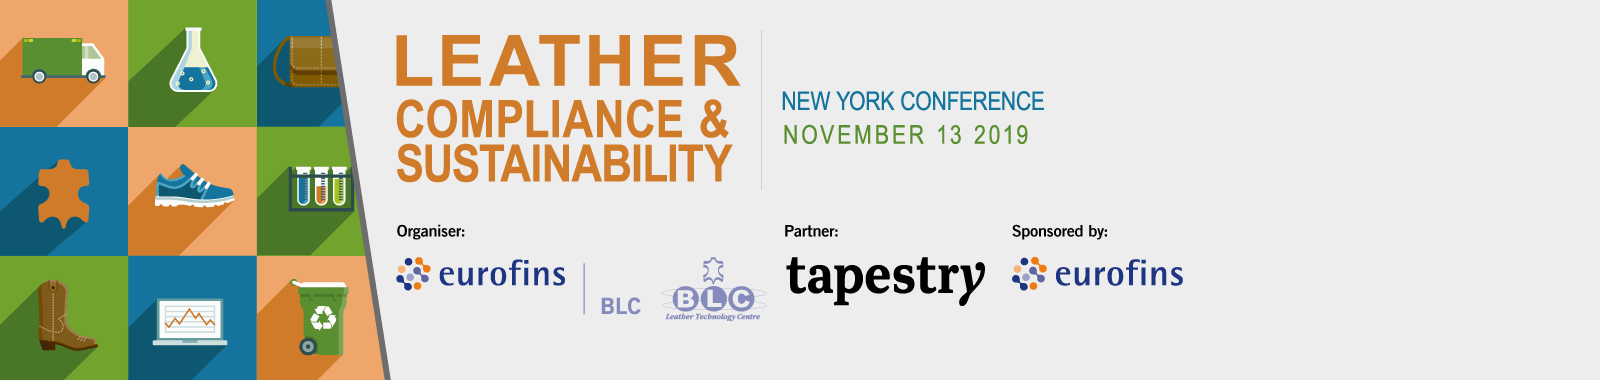 Leather, Compliance & Sustainability Conference